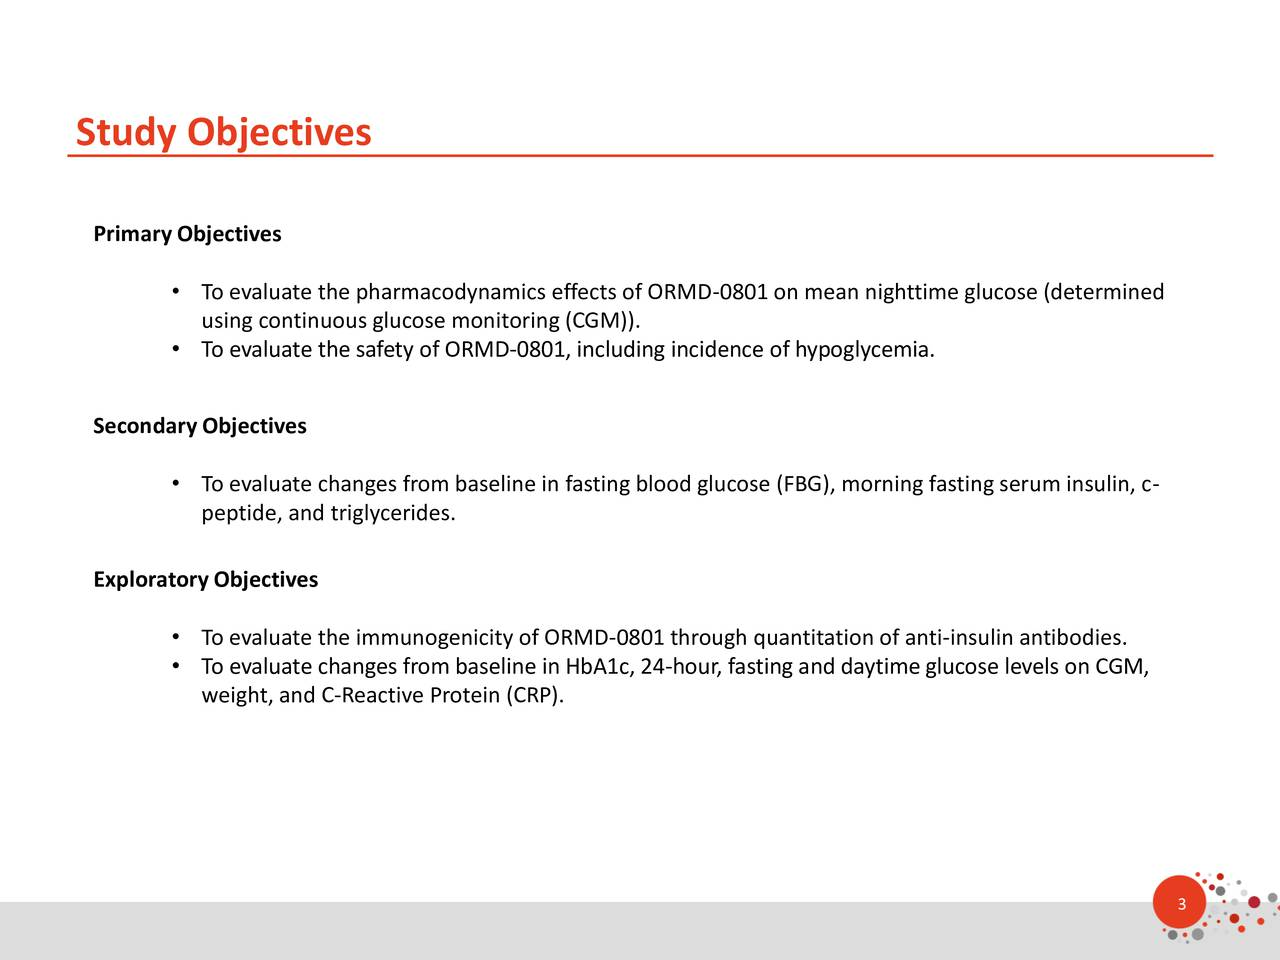 Primary Objectives To evaluate the pharmacodynamics effects of ORMD-0801 on mean nighttime glucose (determined using continuous glucose monitoring (CGM)). To evaluate the safety of ORMD-0801, including incidence of hypoglycemia. SecondaryObjectives To evaluate changes from baseline in fasting blood glucose (FBG), morning fasting serum insulin, c- peptide, and triglycerides. Exploratory Objectives To evaluate the immunogenicity of ORMD-0801 through quantitation of anti-insulin antibodies. To evaluate changes from baseline in HbA1c, 24-hour, fasting and daytime glucose levels on CGM, weight, and C-Reactive Protein (CRP). 3